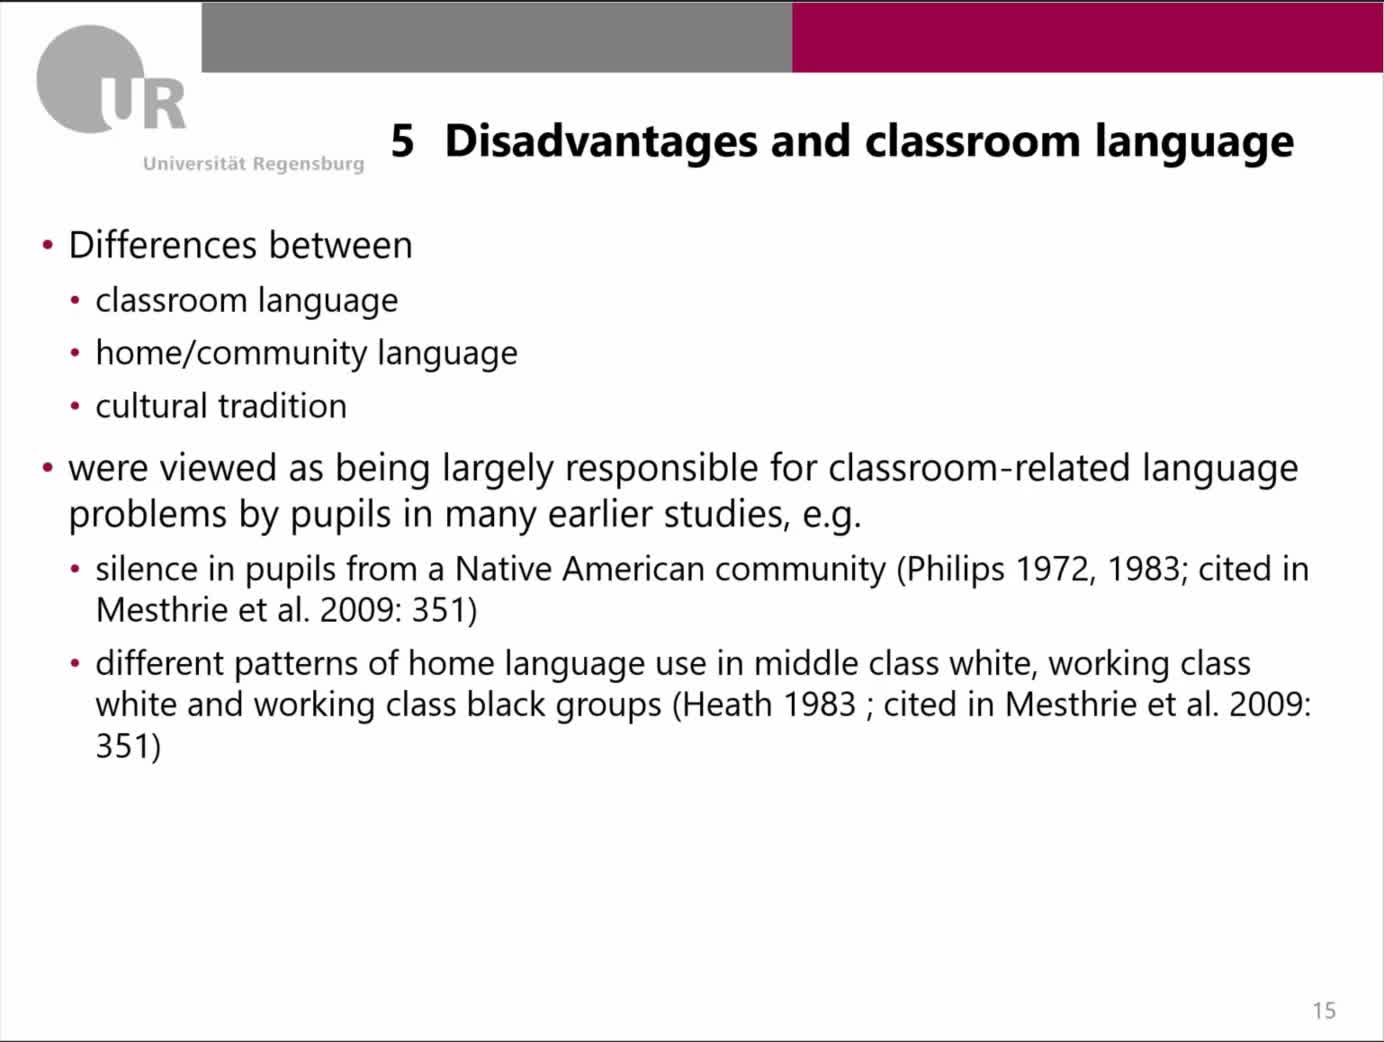 11-4-Disadvantages and classroom language